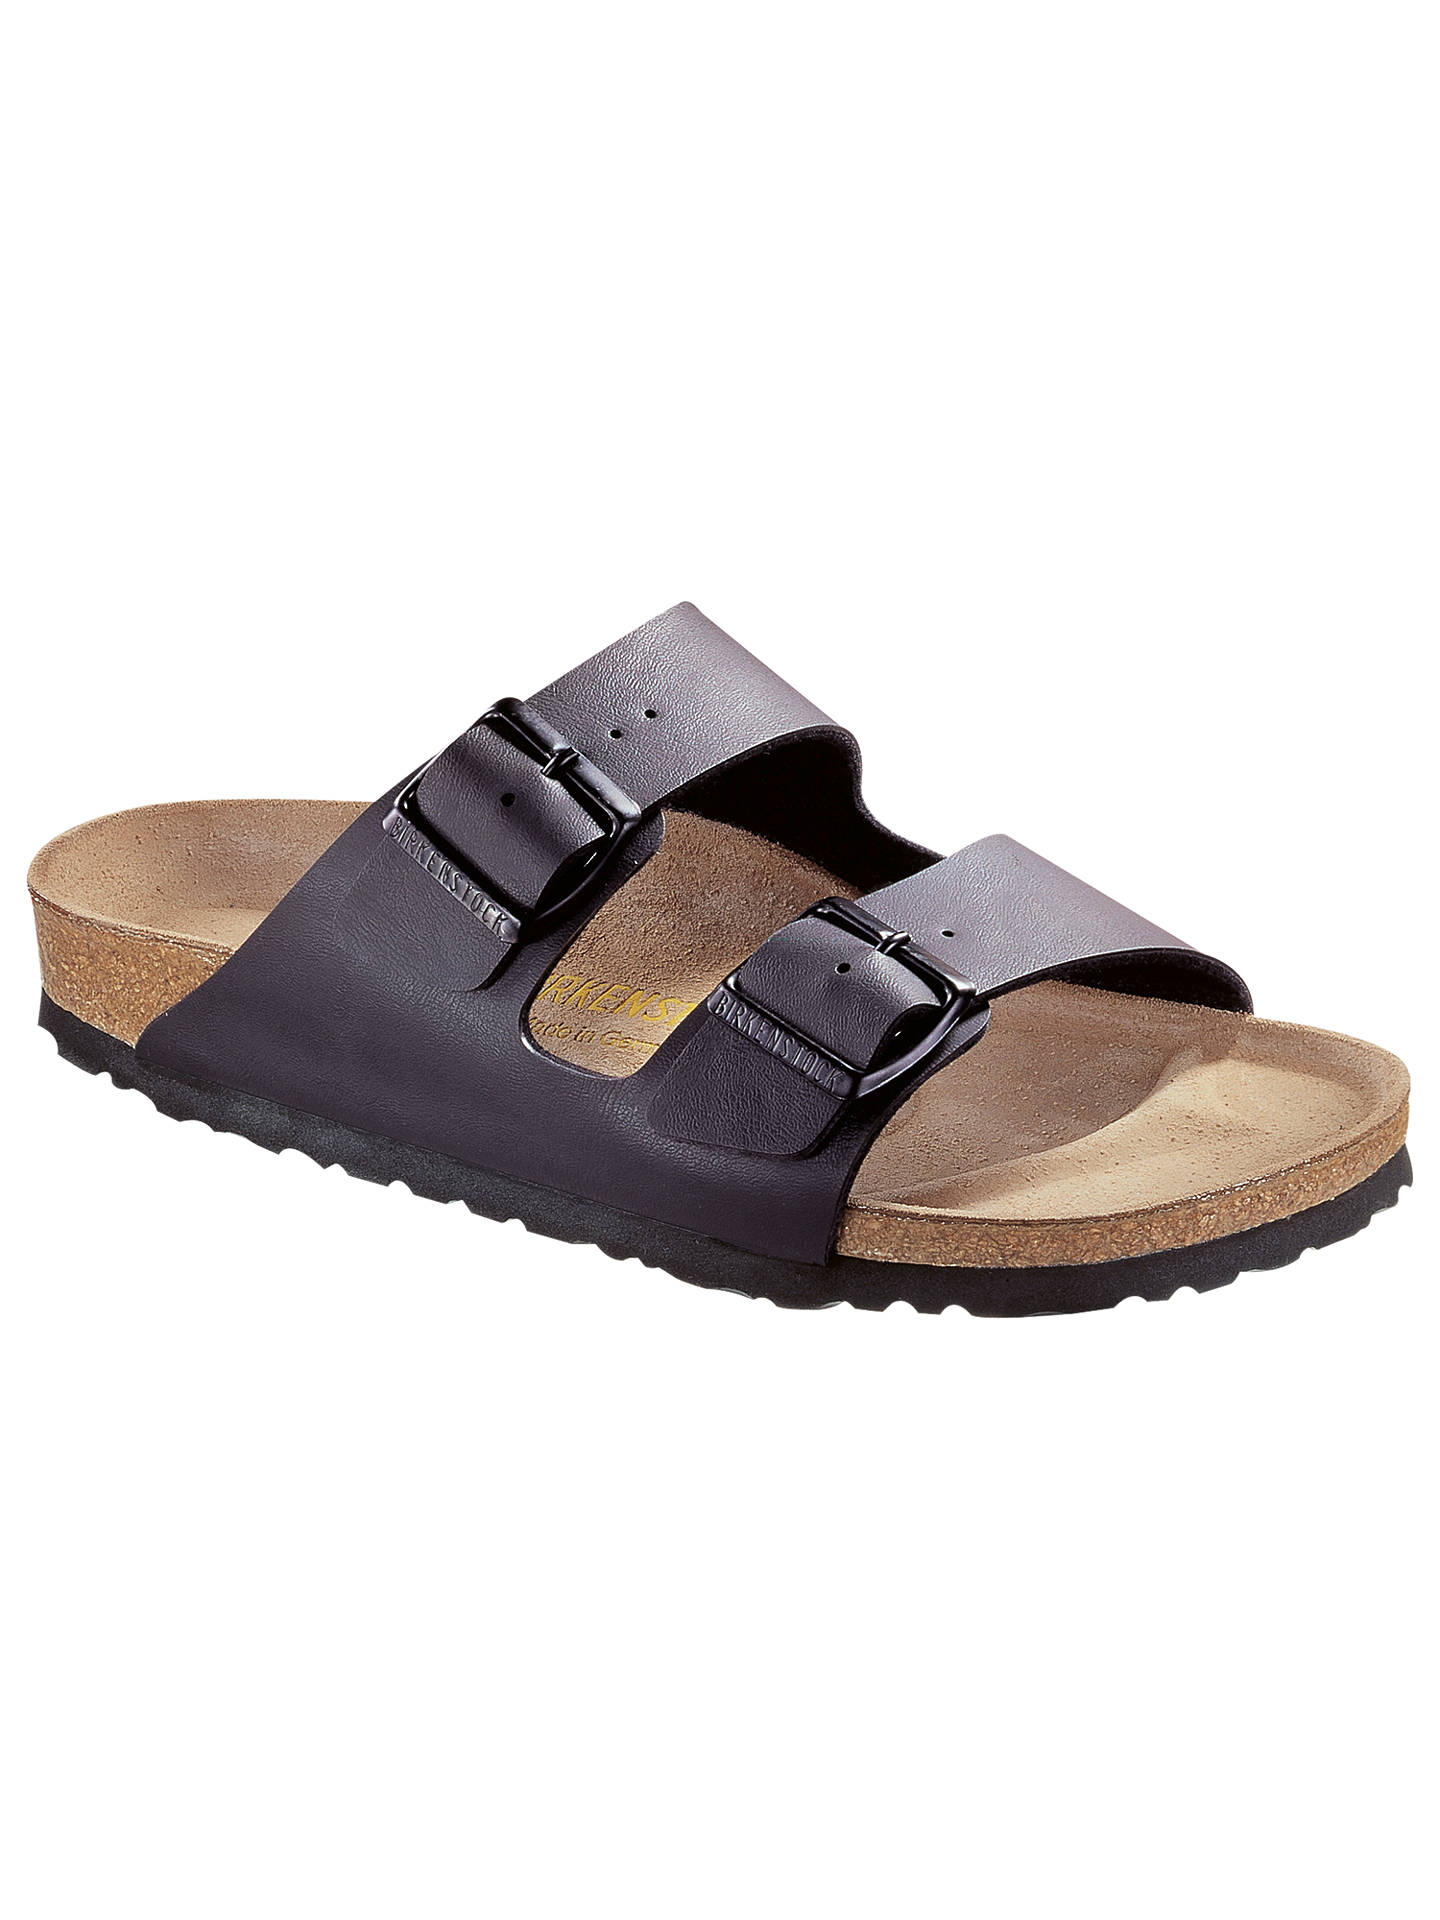 c33cb6c899a2 Birkenstock Arizona Birko Flor Sandals at John Lewis   Partners